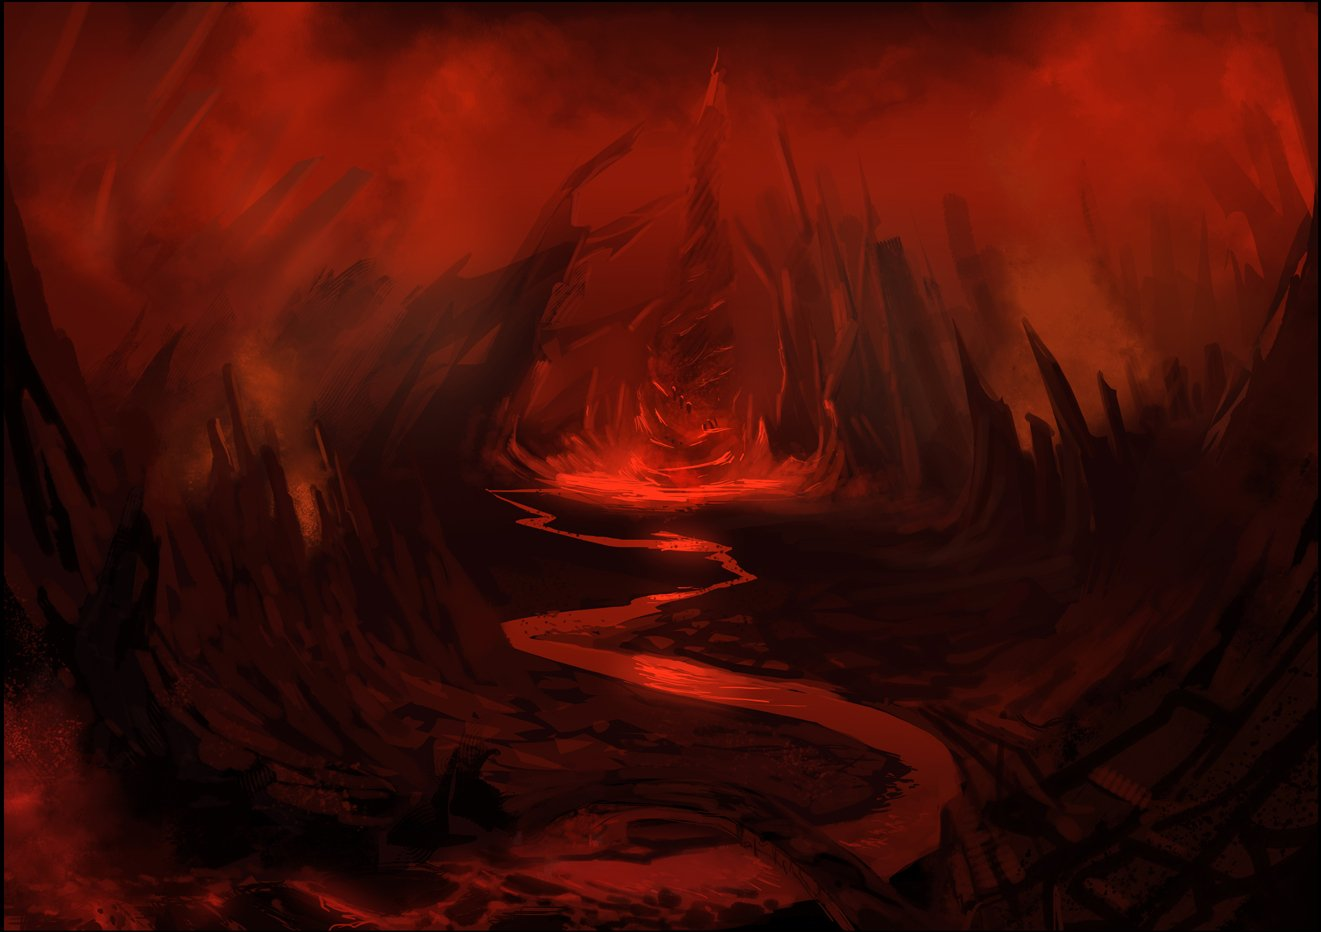 infierno hell red background HD Wallpaper 1321x932